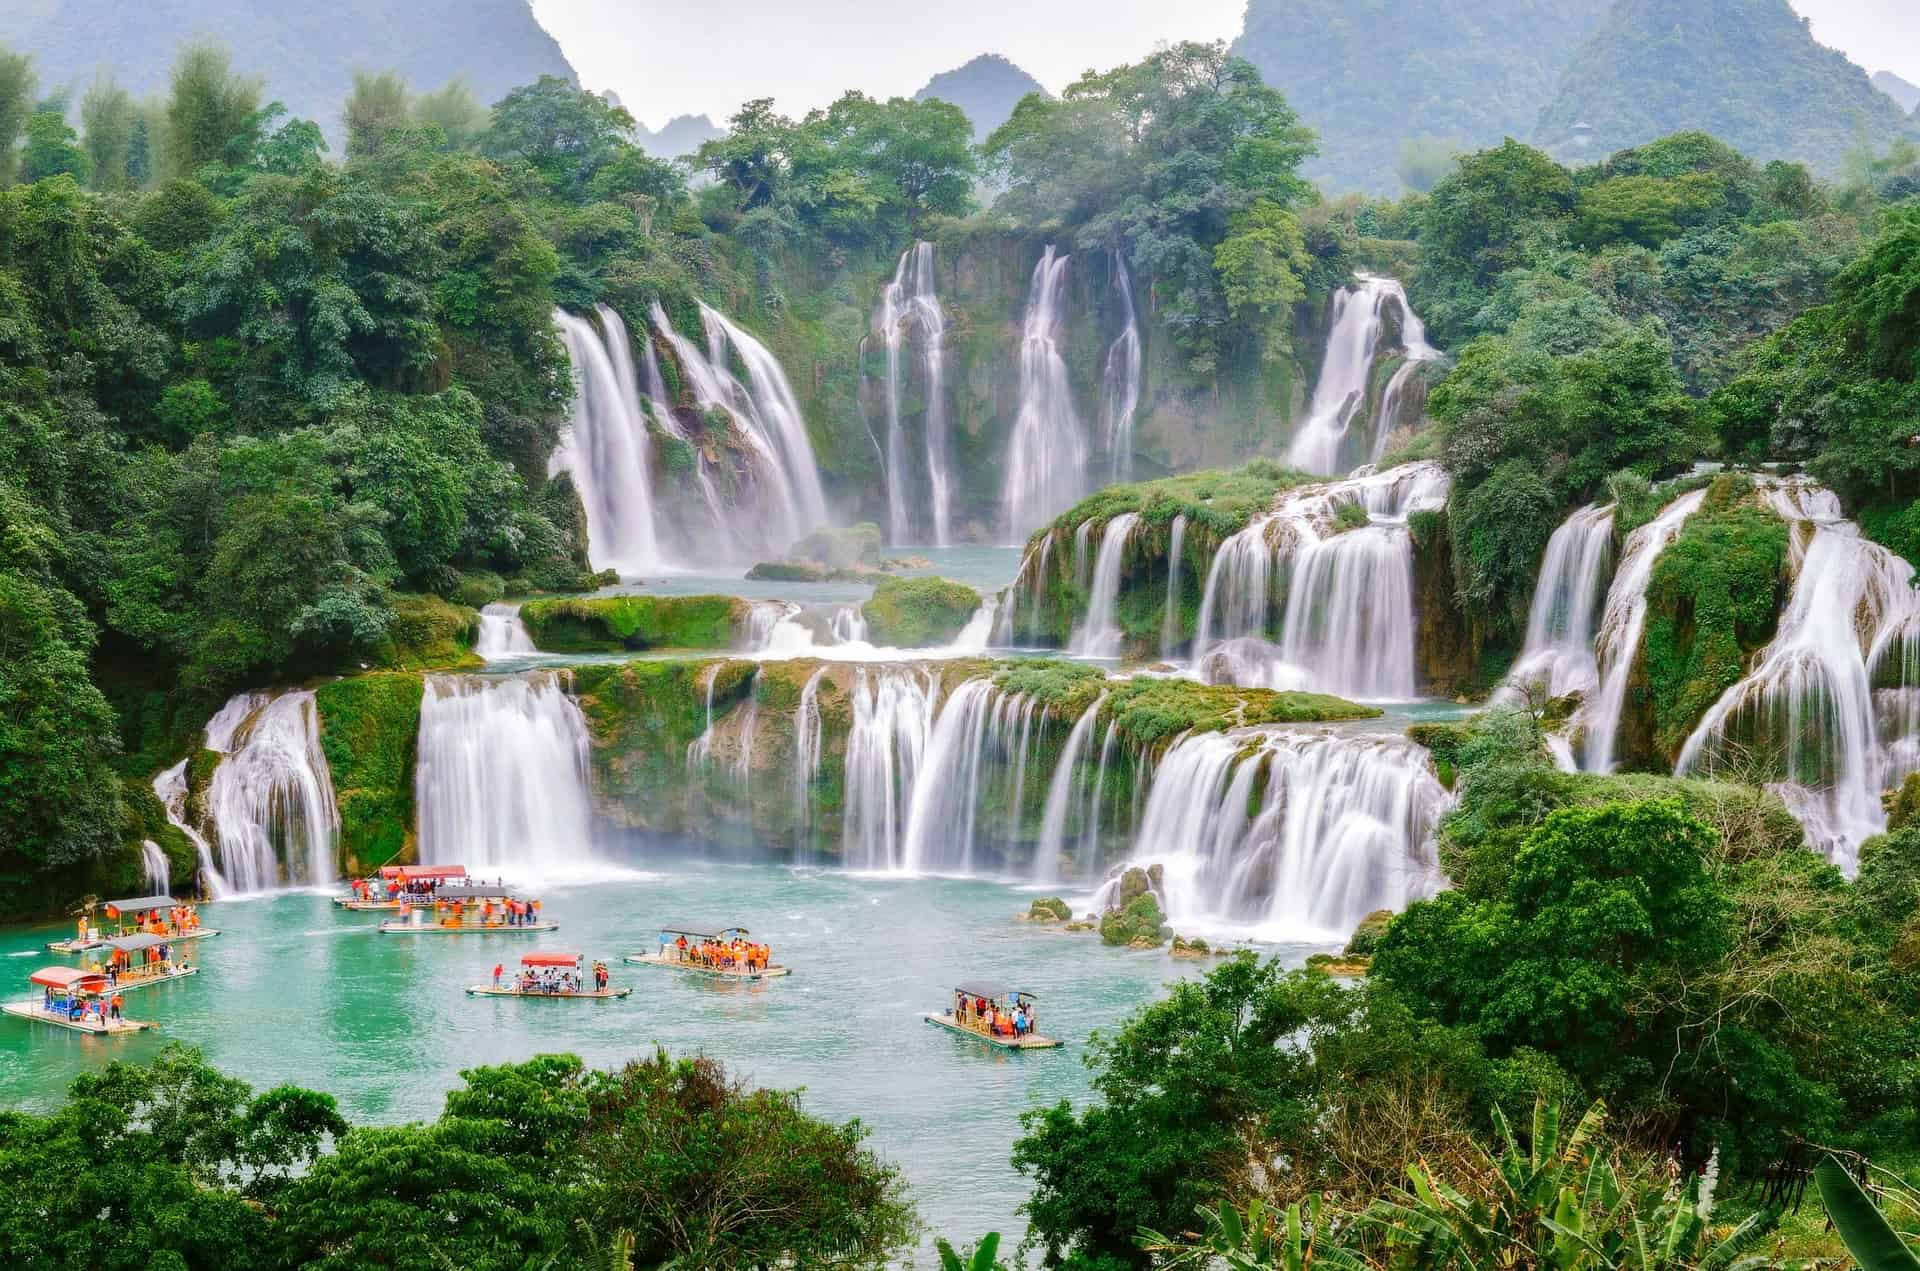 Ban Gioc Waterfall: Vietnam's Secret Natural Wonder